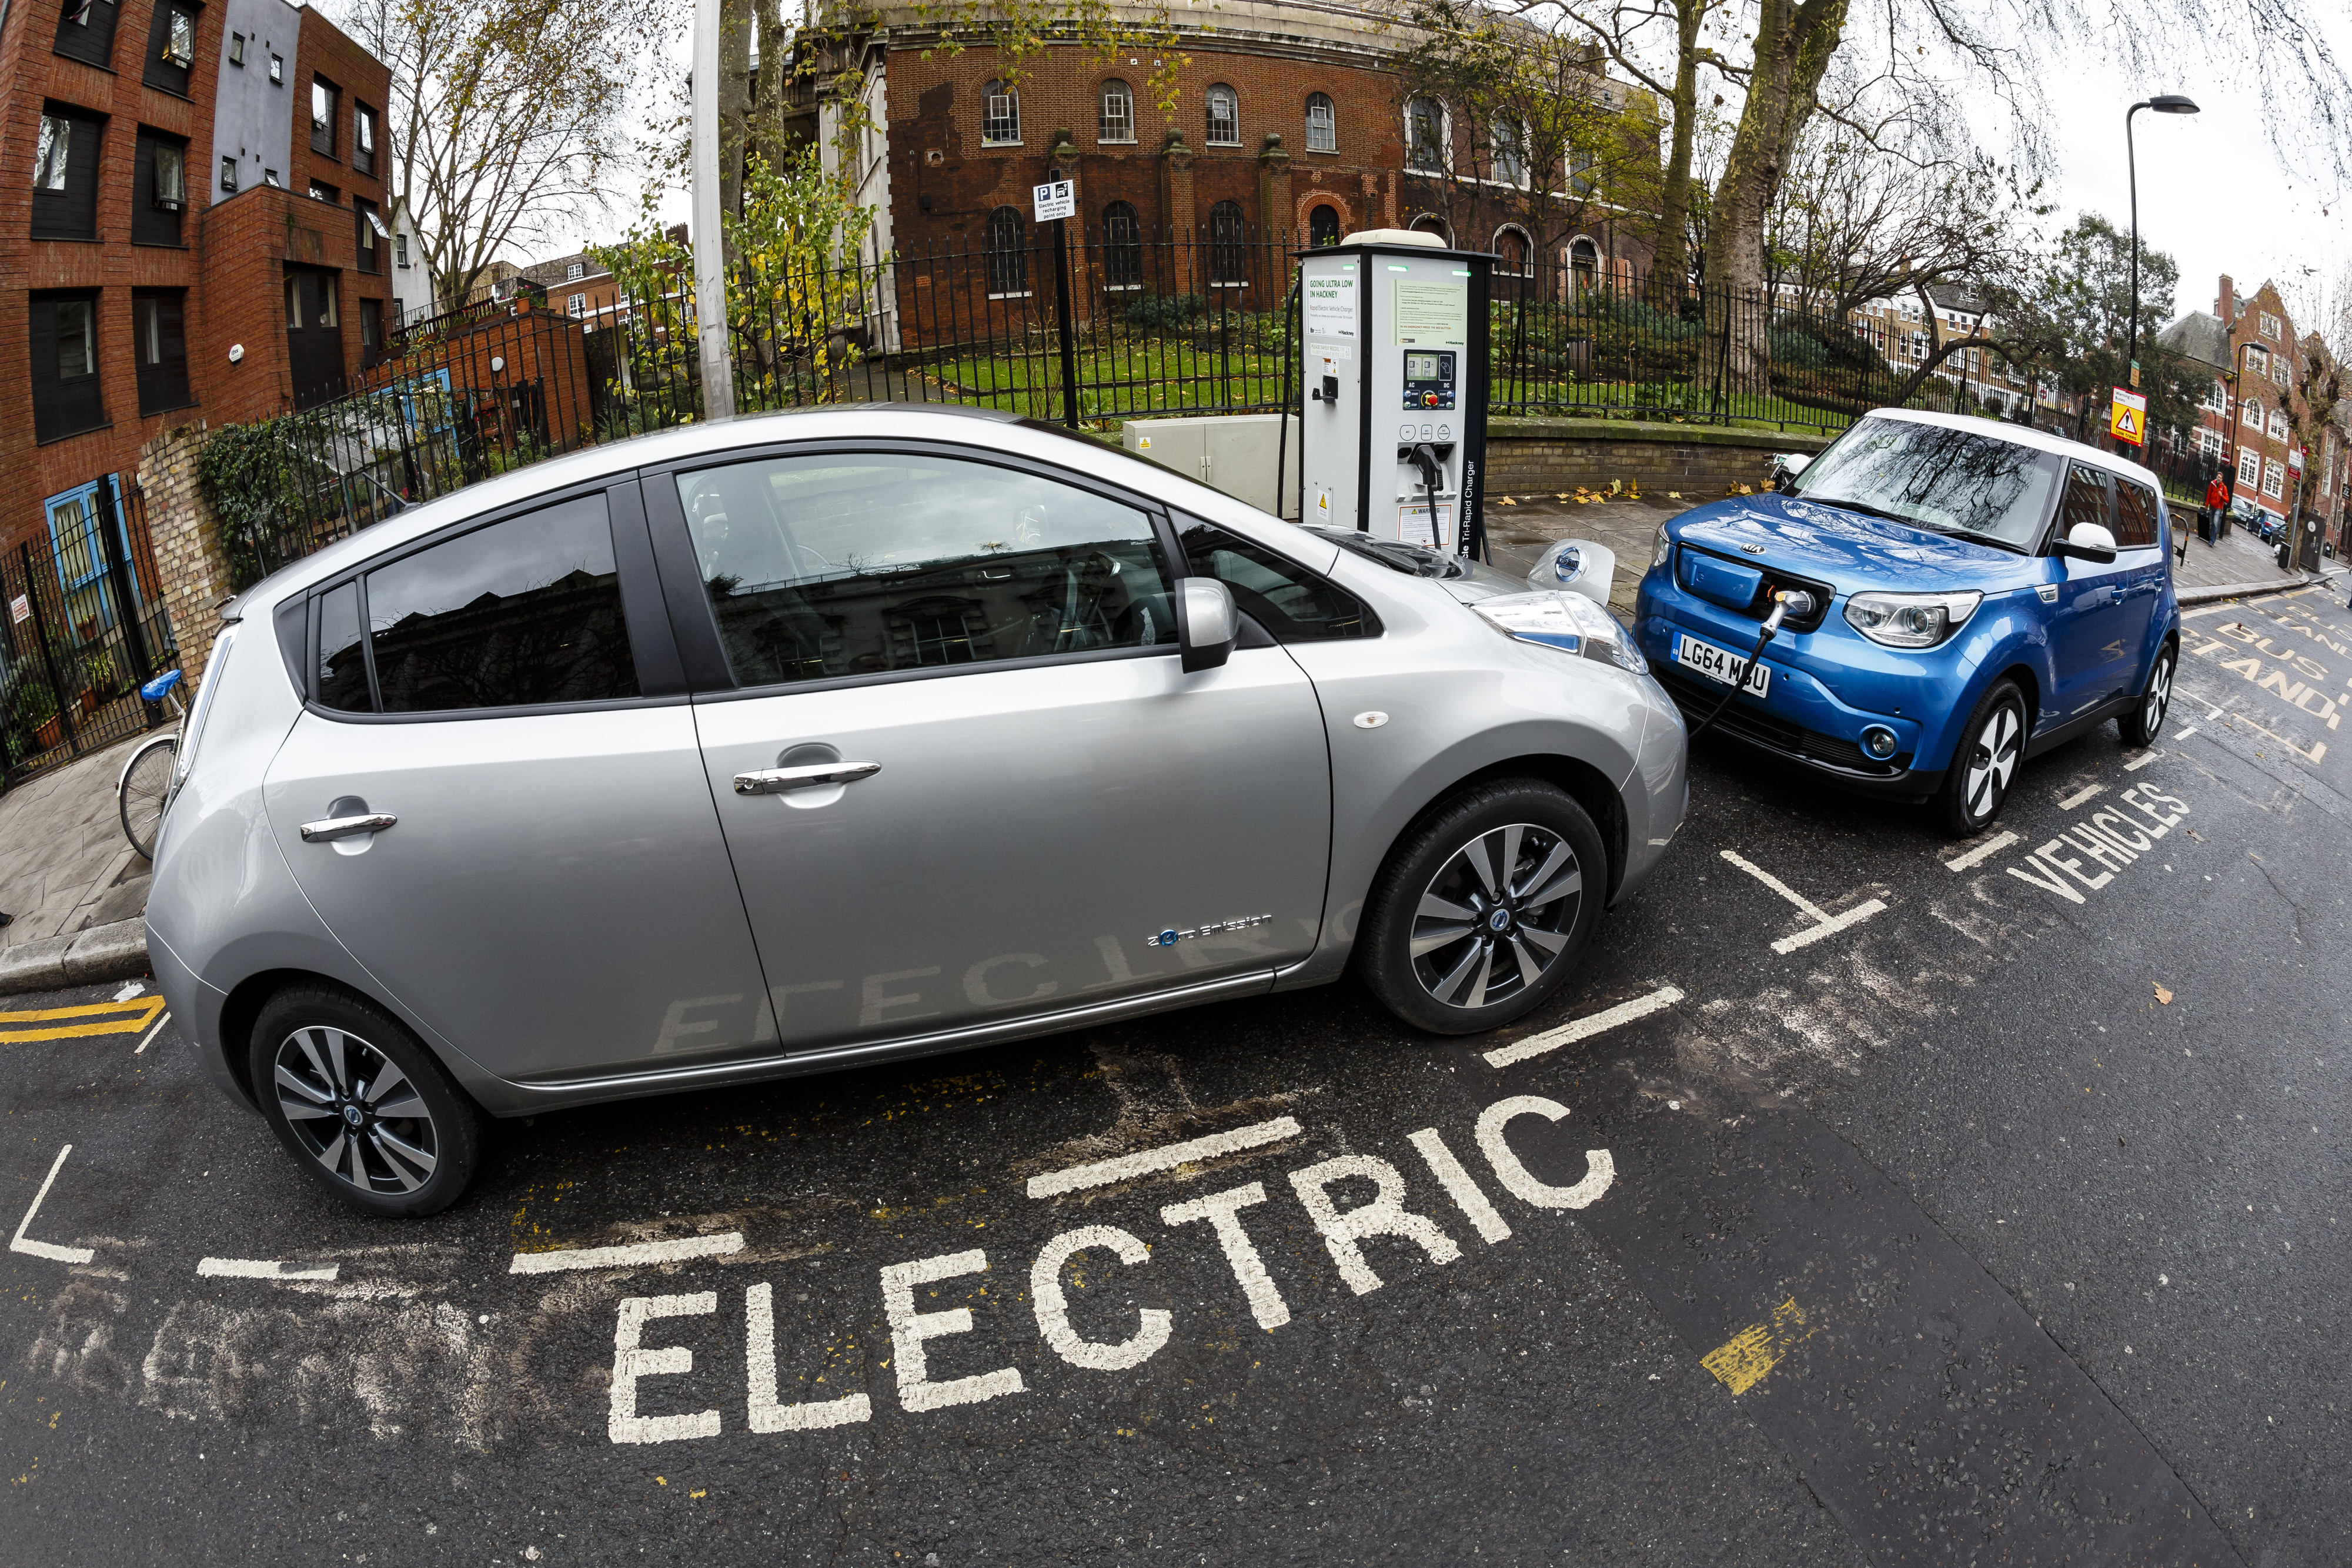 An electric car charging spot on a street in London.